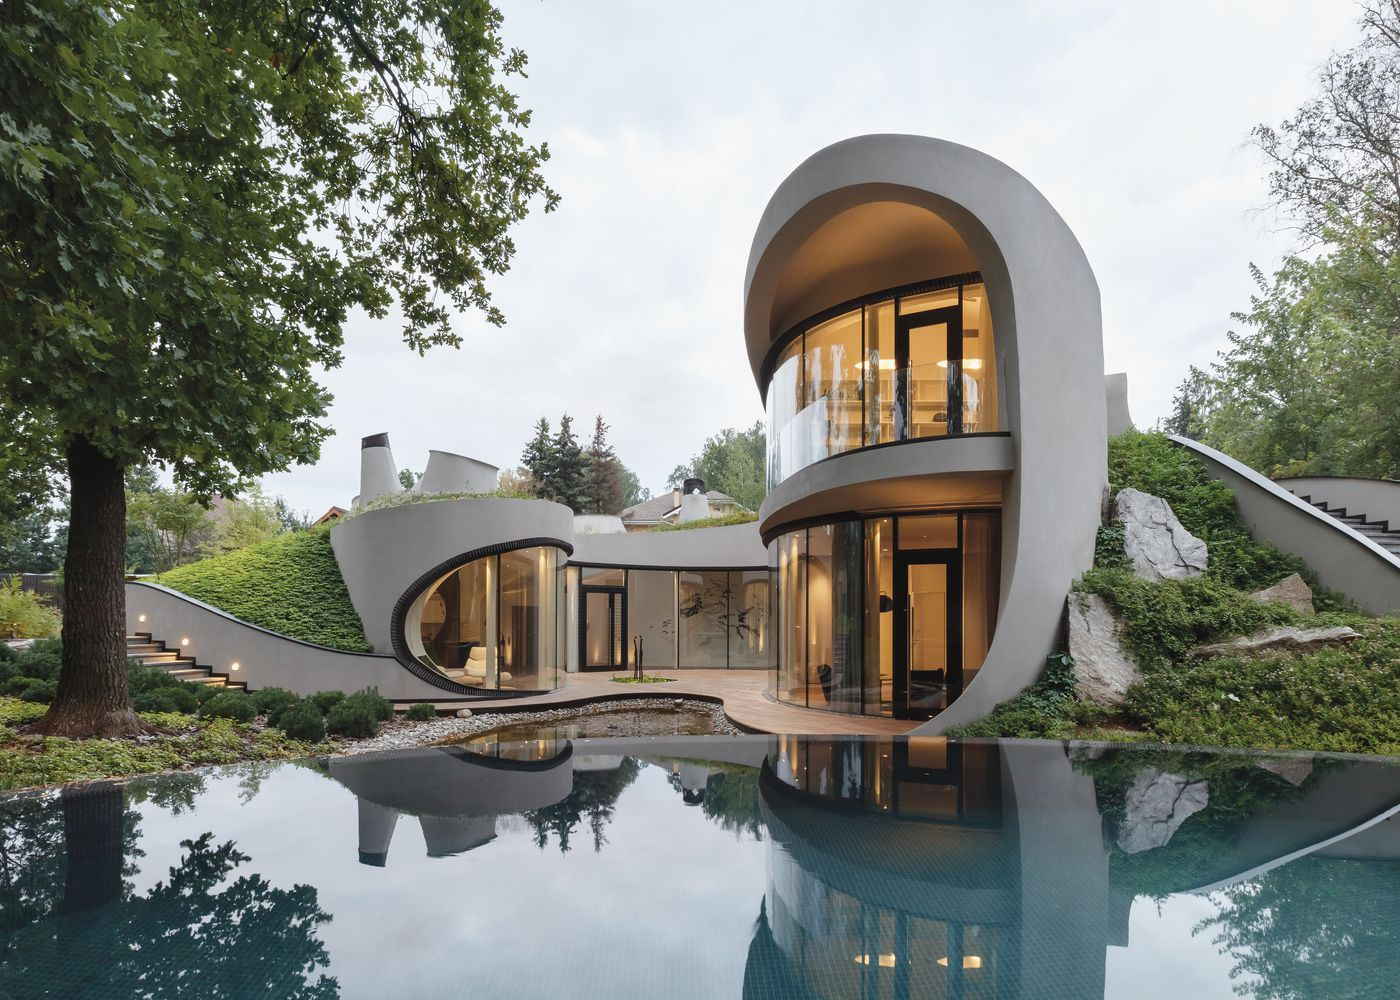 Futuristic Modern Home Goes All In On Curves Architecture Futuristic Home House Architecture Design